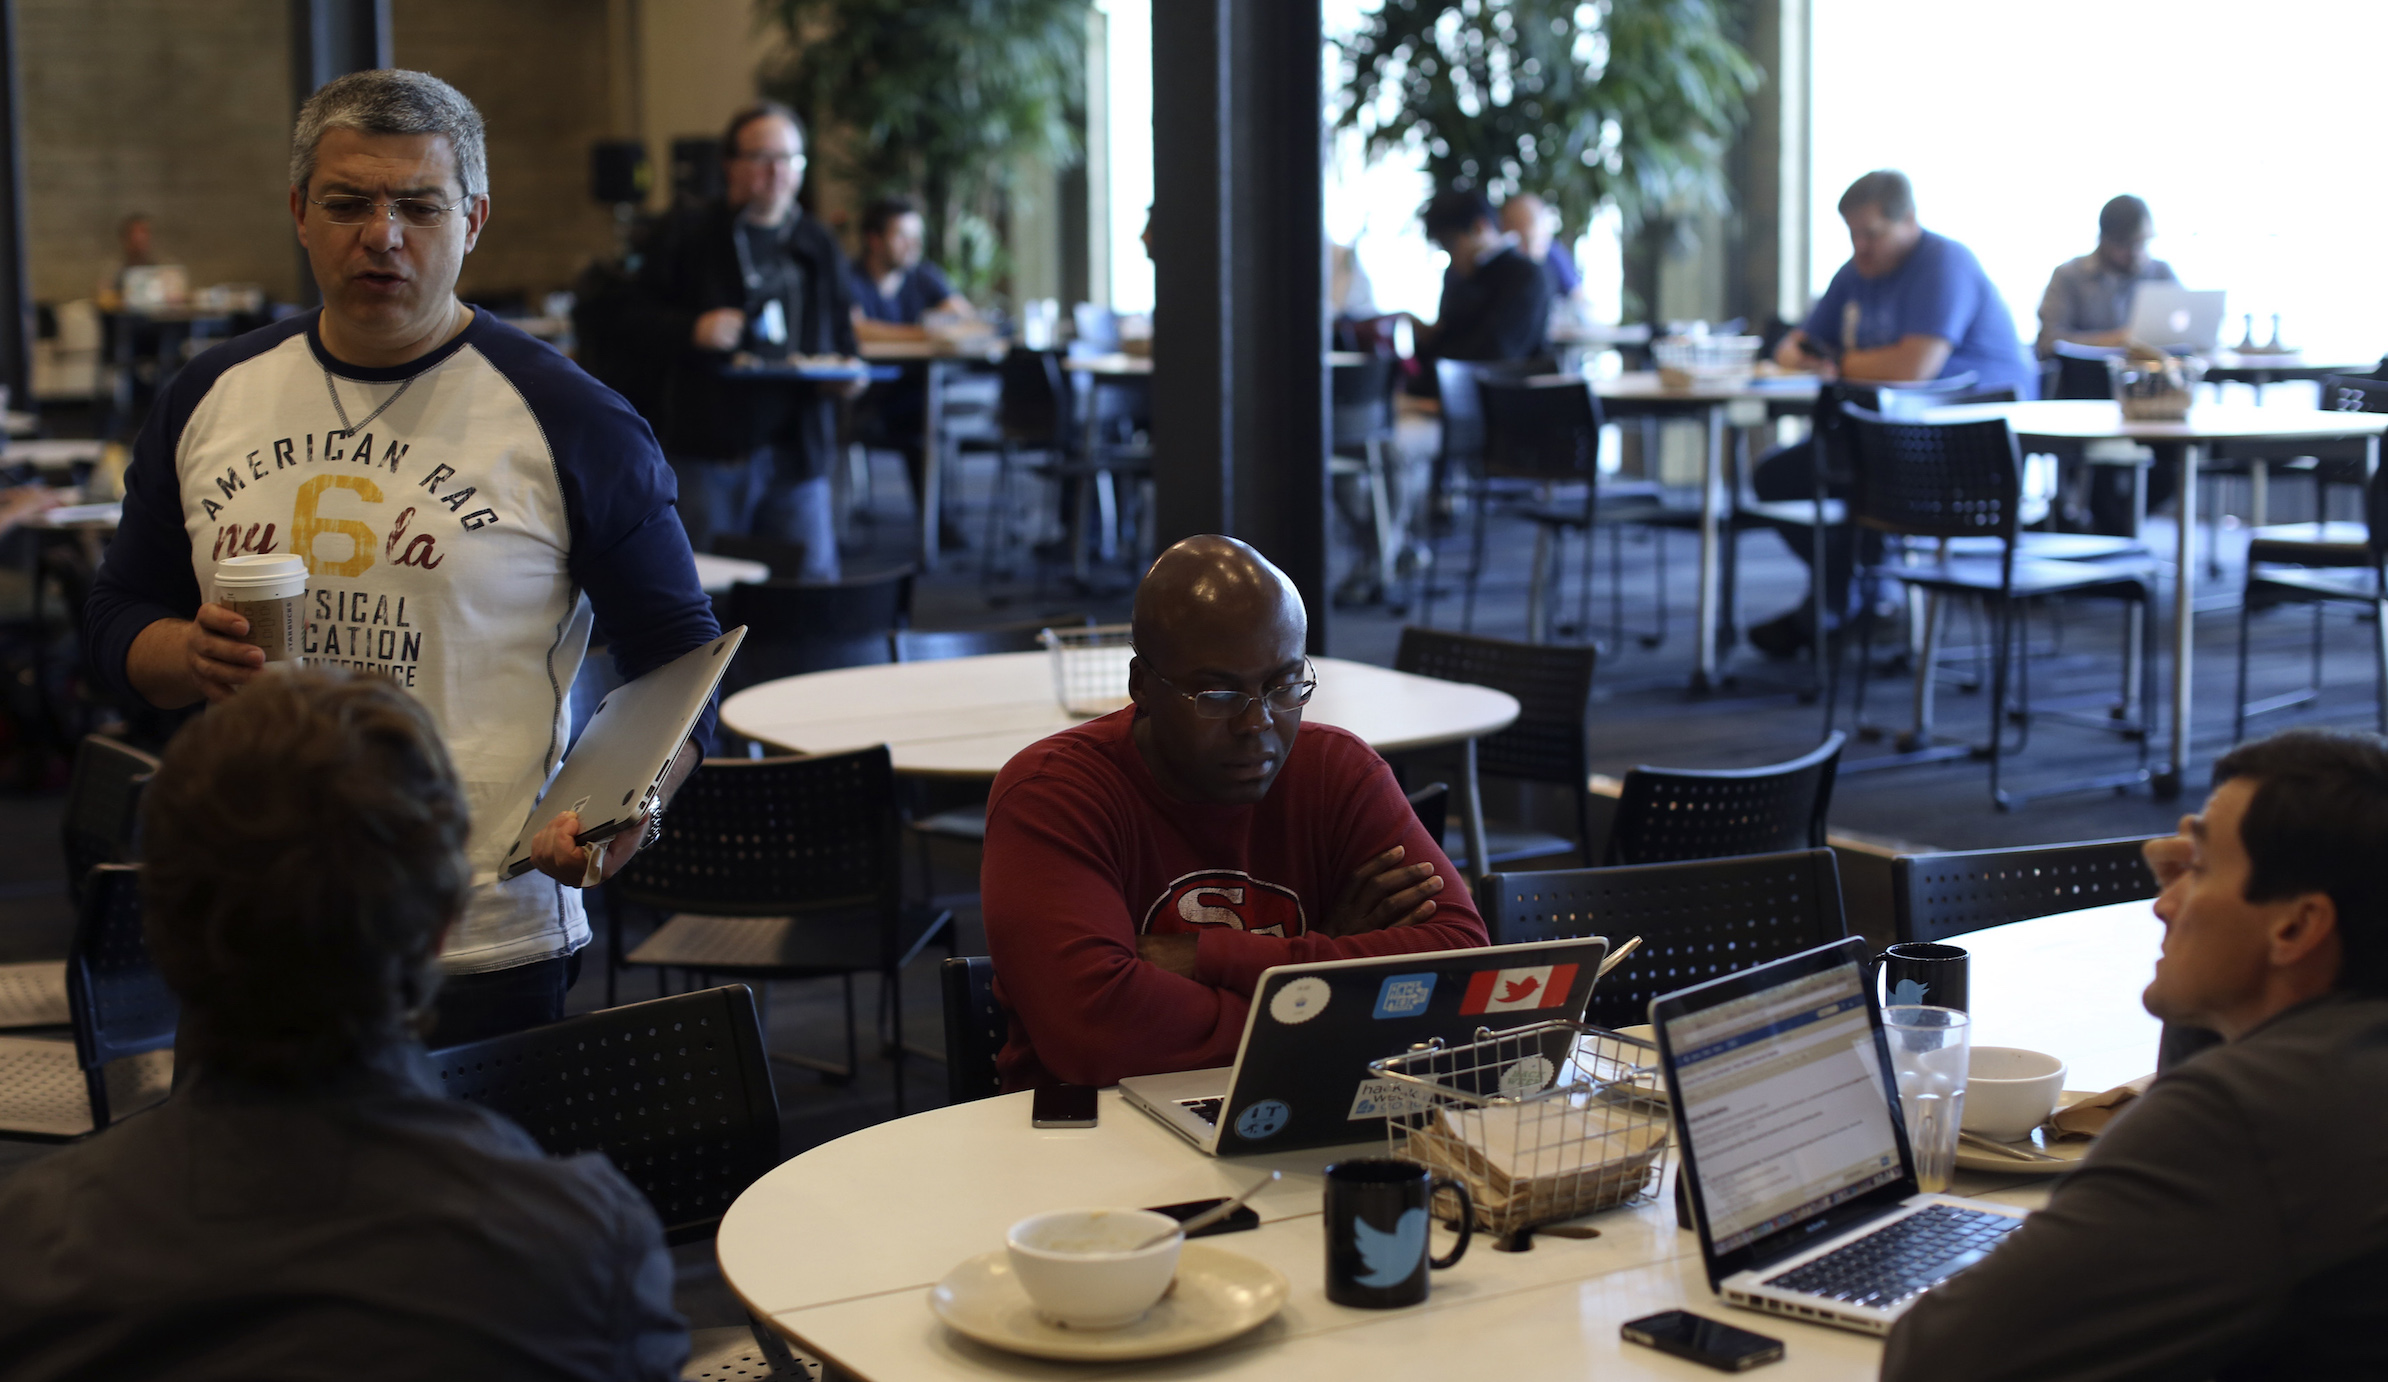 Employees talk in the dining area at Twitter's headquarters in San Francisco, California October 4, 2013. Twitter Inc is likely to price its hotly anticipated initial public offering later on November 6, 2013 above an already bumped-up target range, sources familiar with the process said. Picture taken October 4. REUTERS/Robert Galbraith  (UNITED STATES - Tags: SCIENCE TECHNOLOGY BUSINESS EMPLOYMENT) - RTX152SL